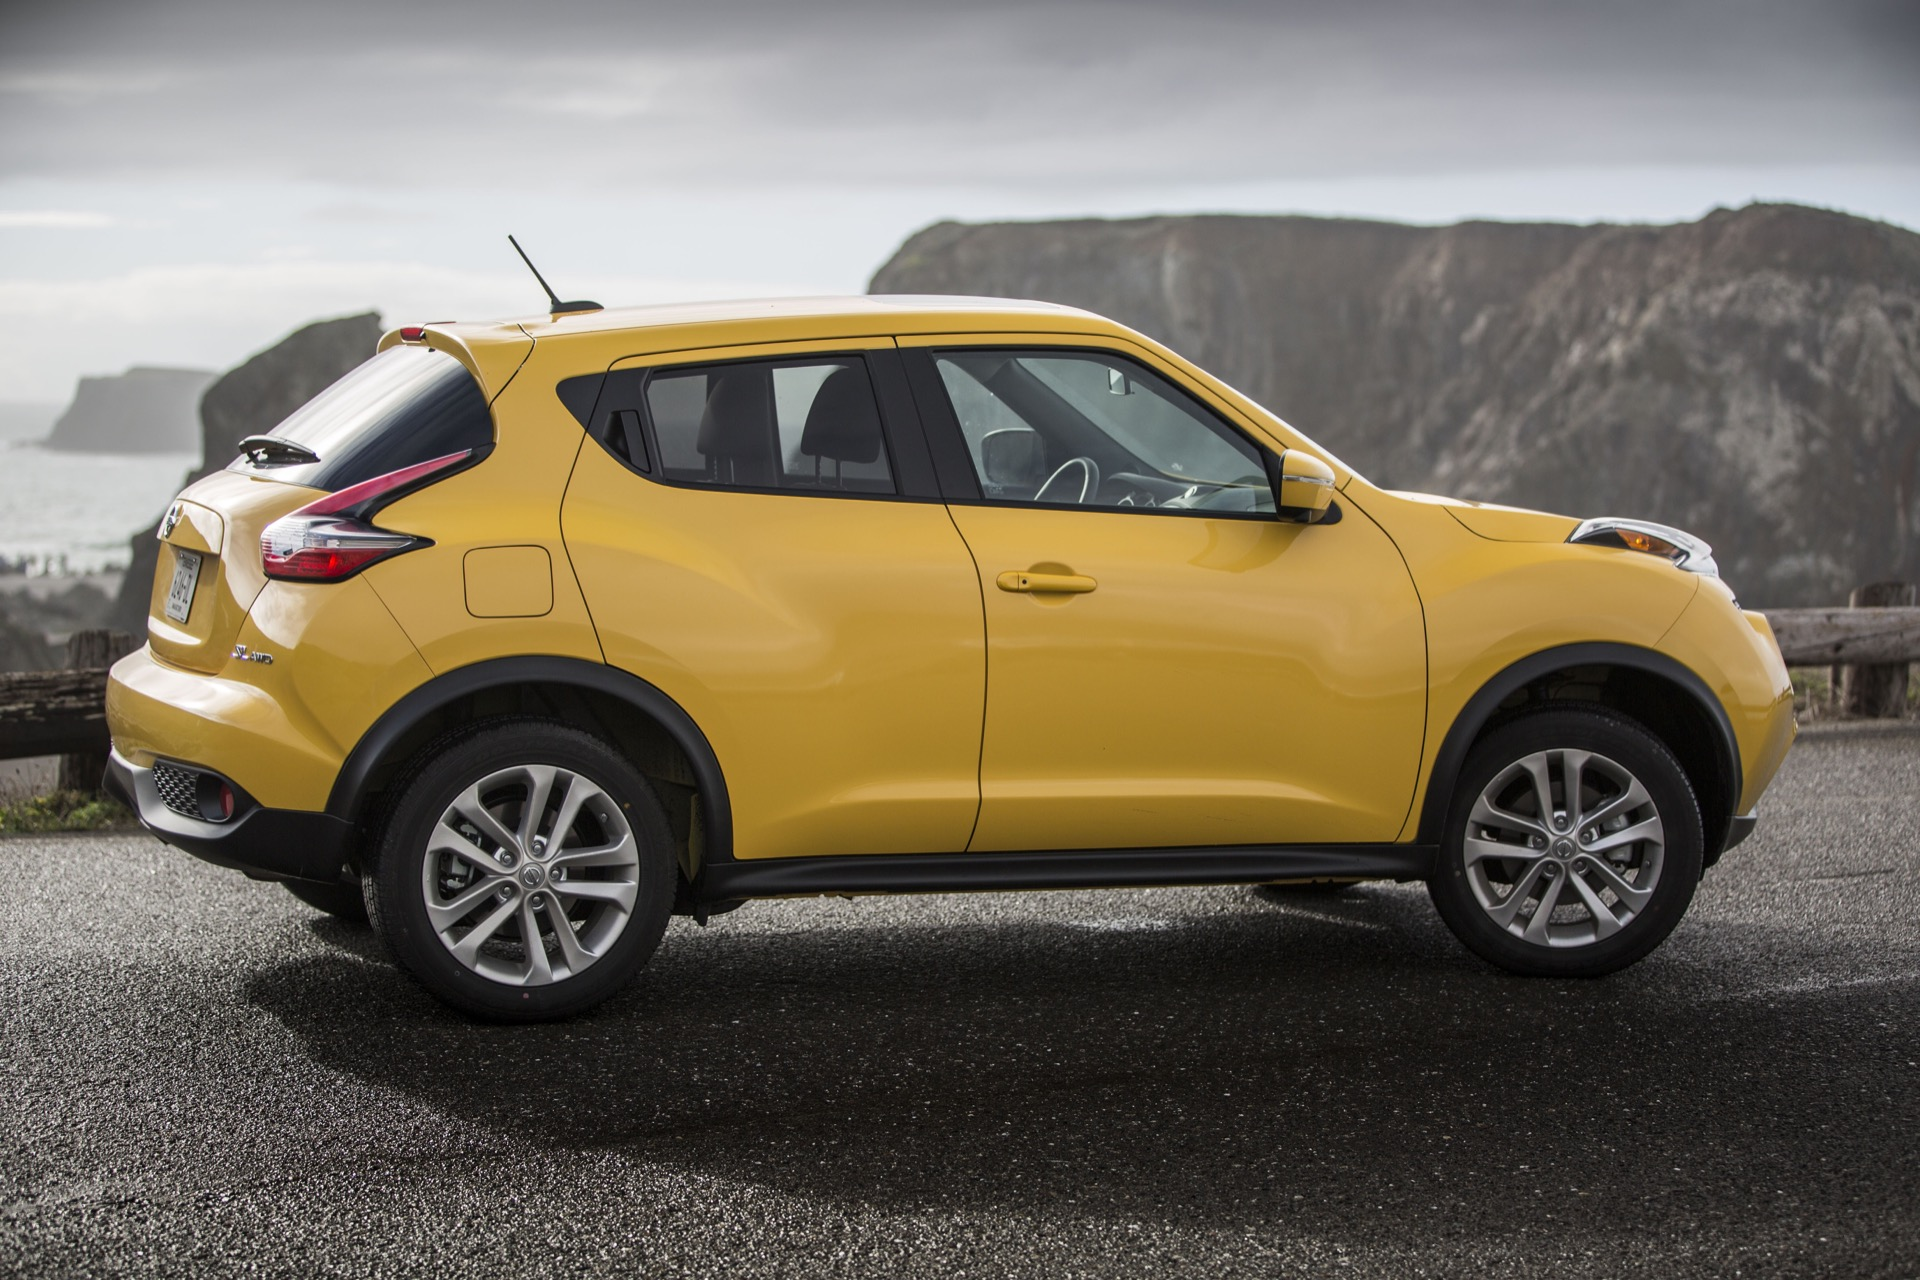 2015 Nissan Juke Quality Review - The Car Connection